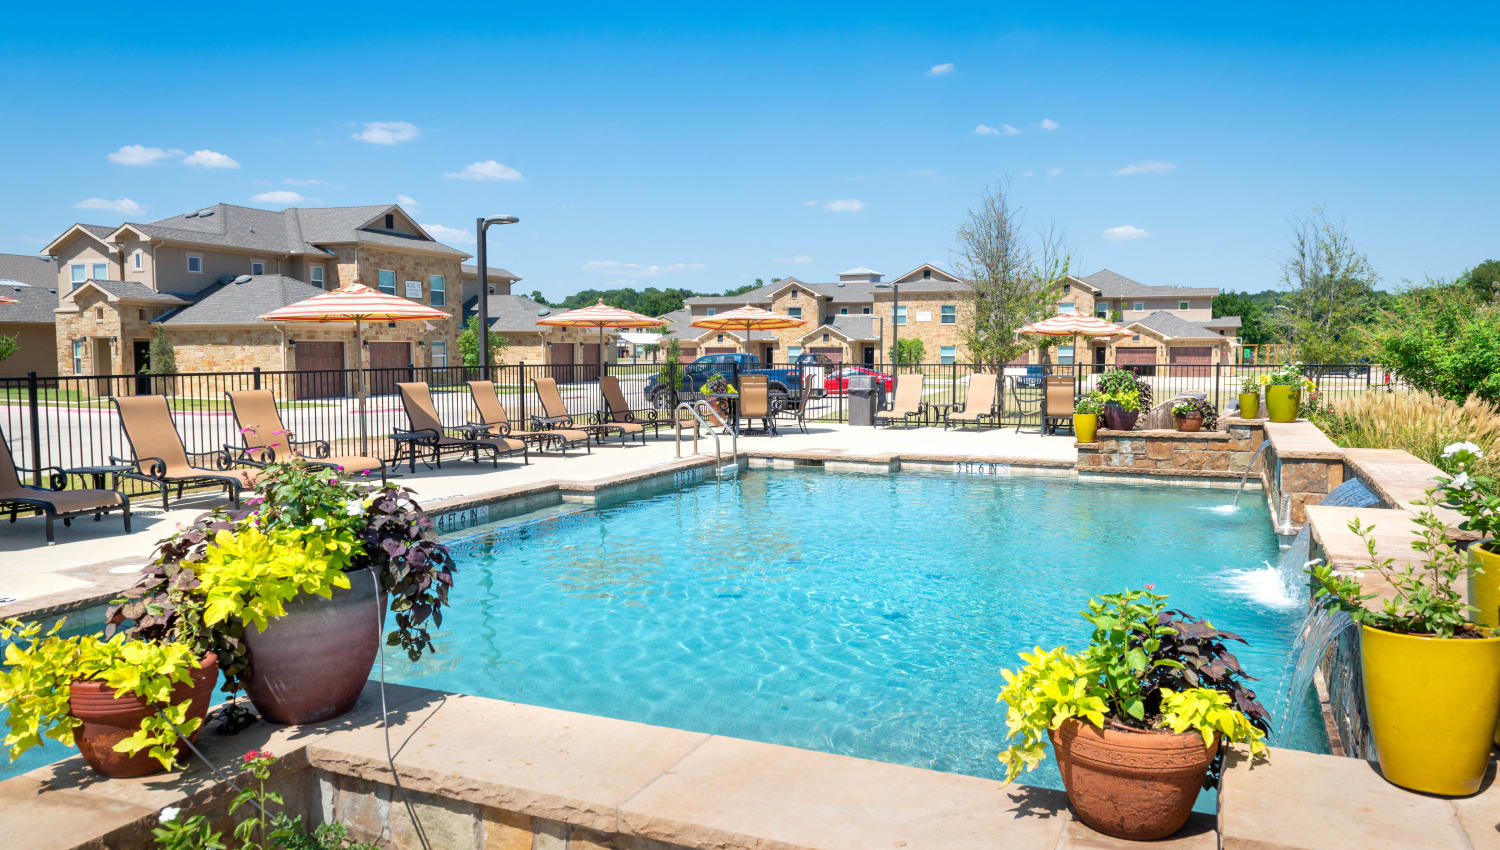 Resort-style swimming pool surrounded by a variety of well-maintained flora at Olympus Willow Park in Willow Park, Texas